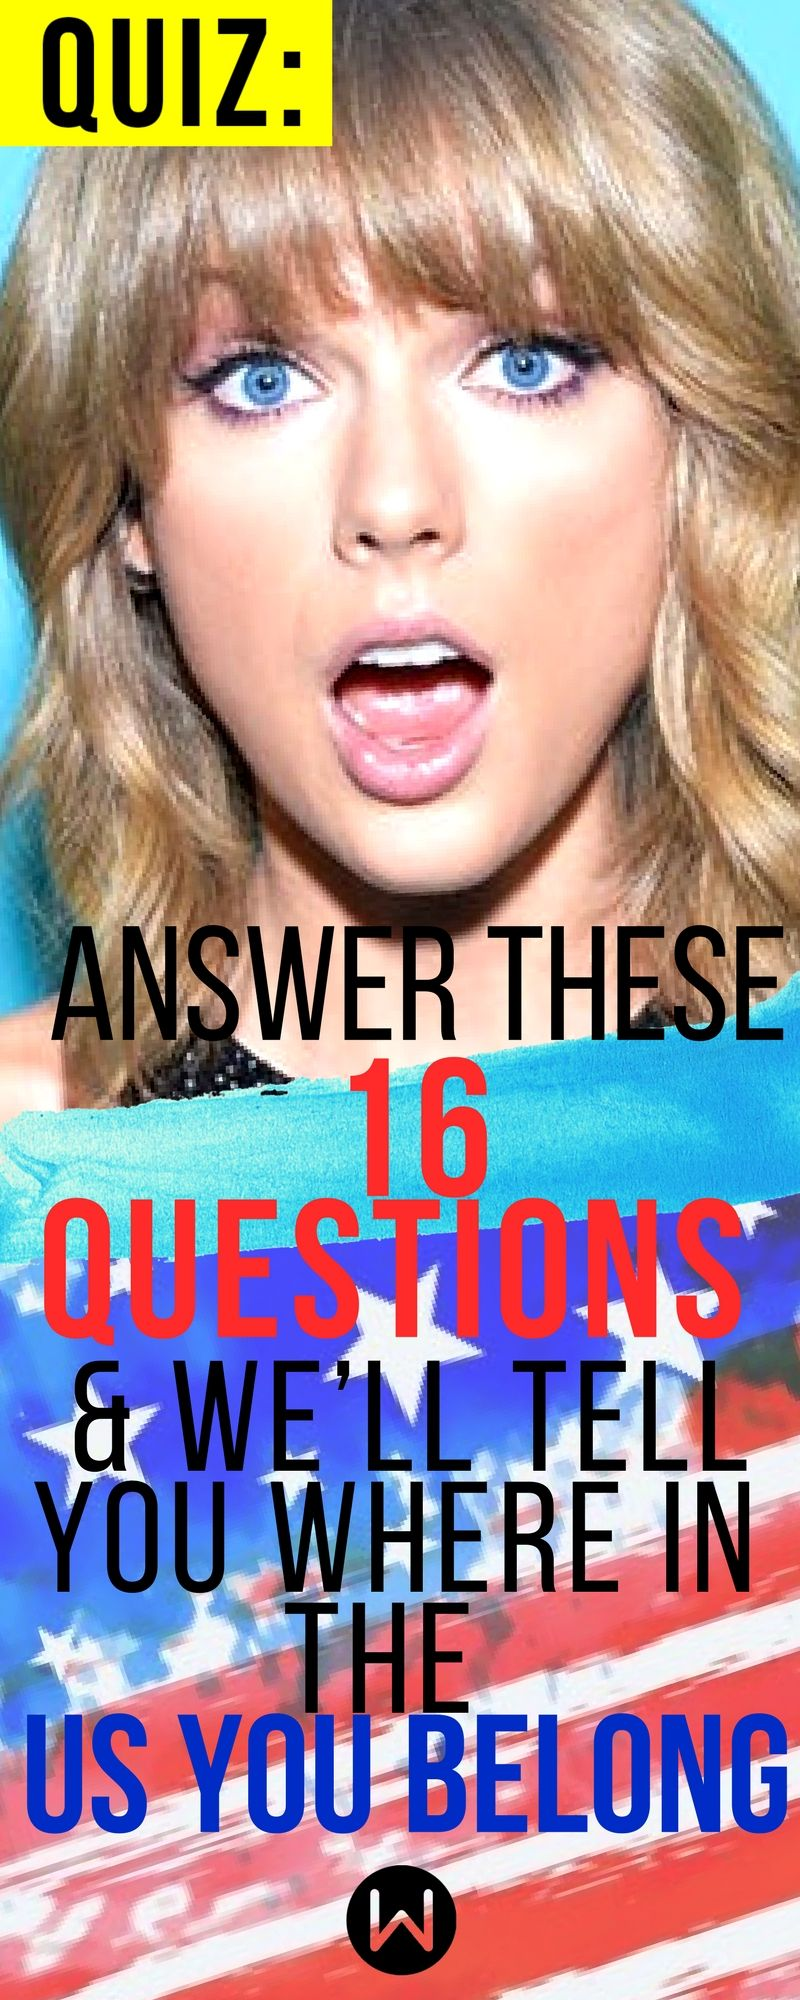 Quiz: Answer These 16 Questions & We'll Tell You Where In